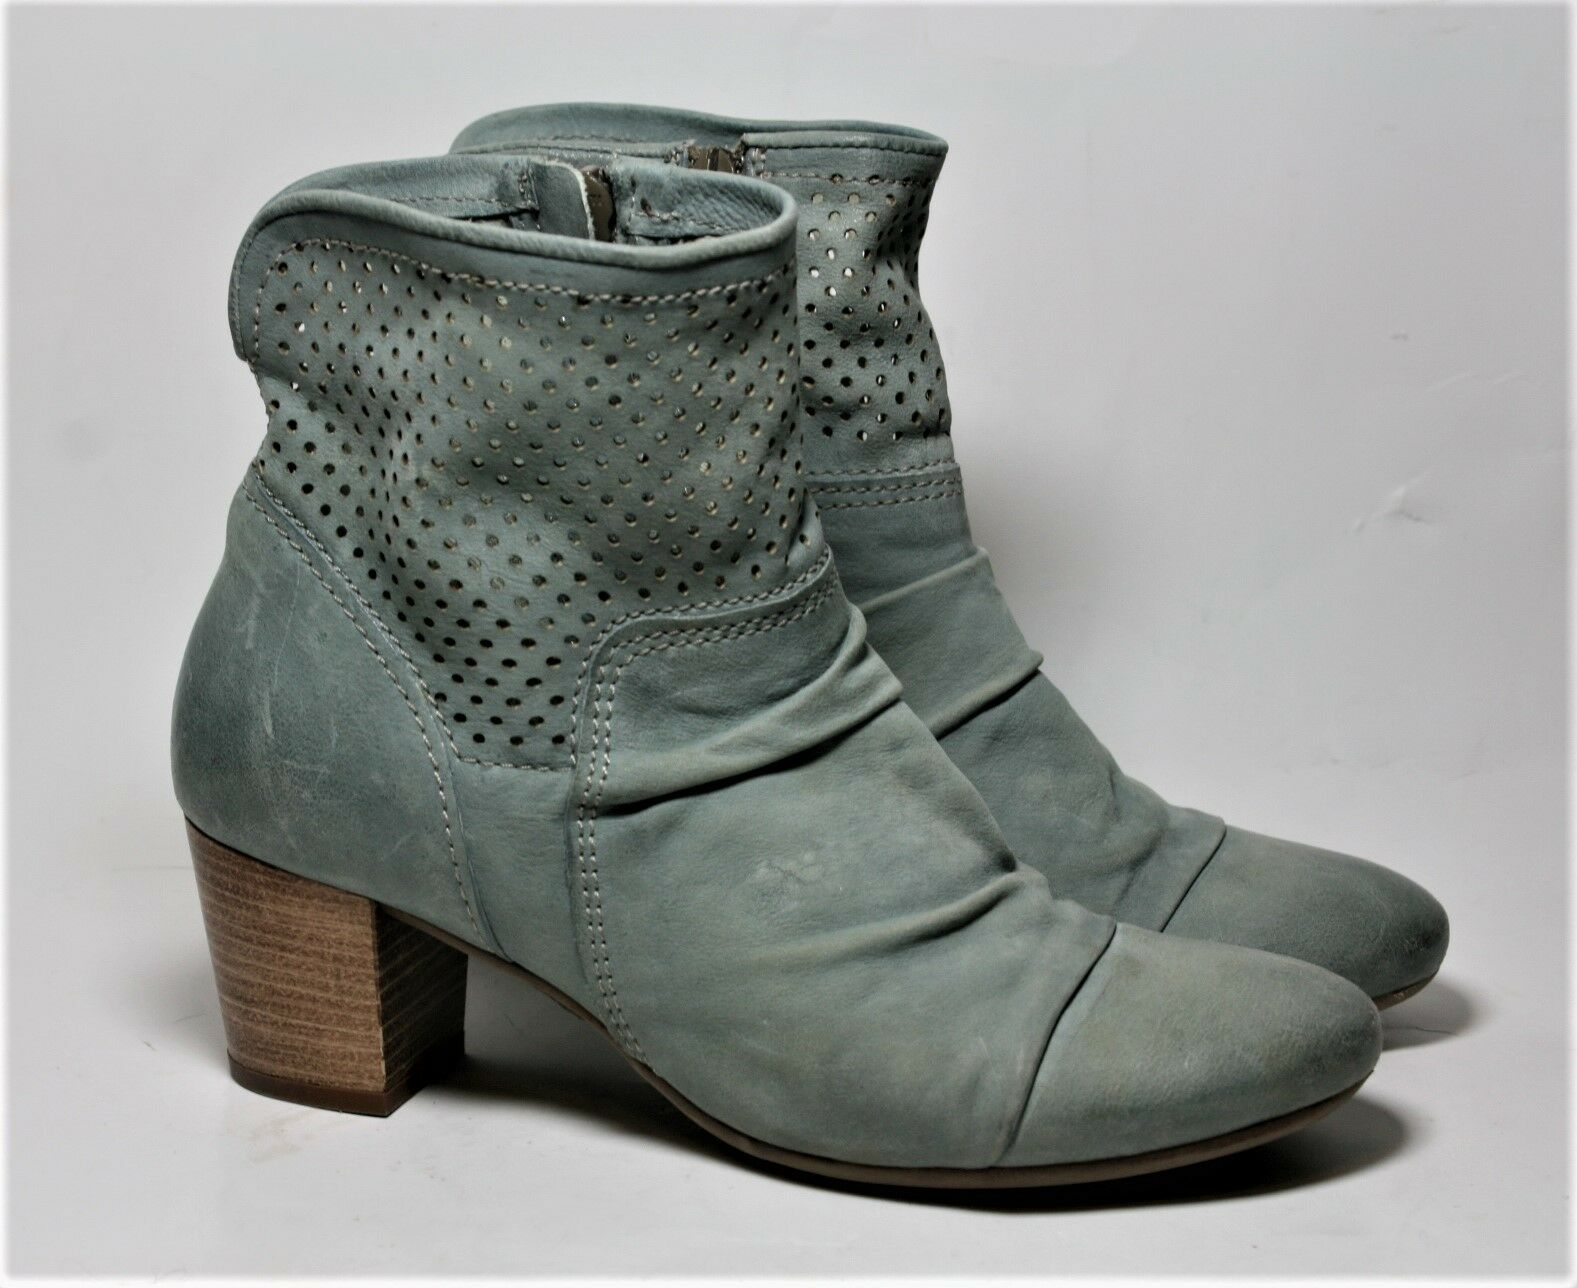 MJUS SHOES LIGHT blueE LEATHER PERFORATED ANKLE BOOTS 37 BOOTIES SIDE ZIP